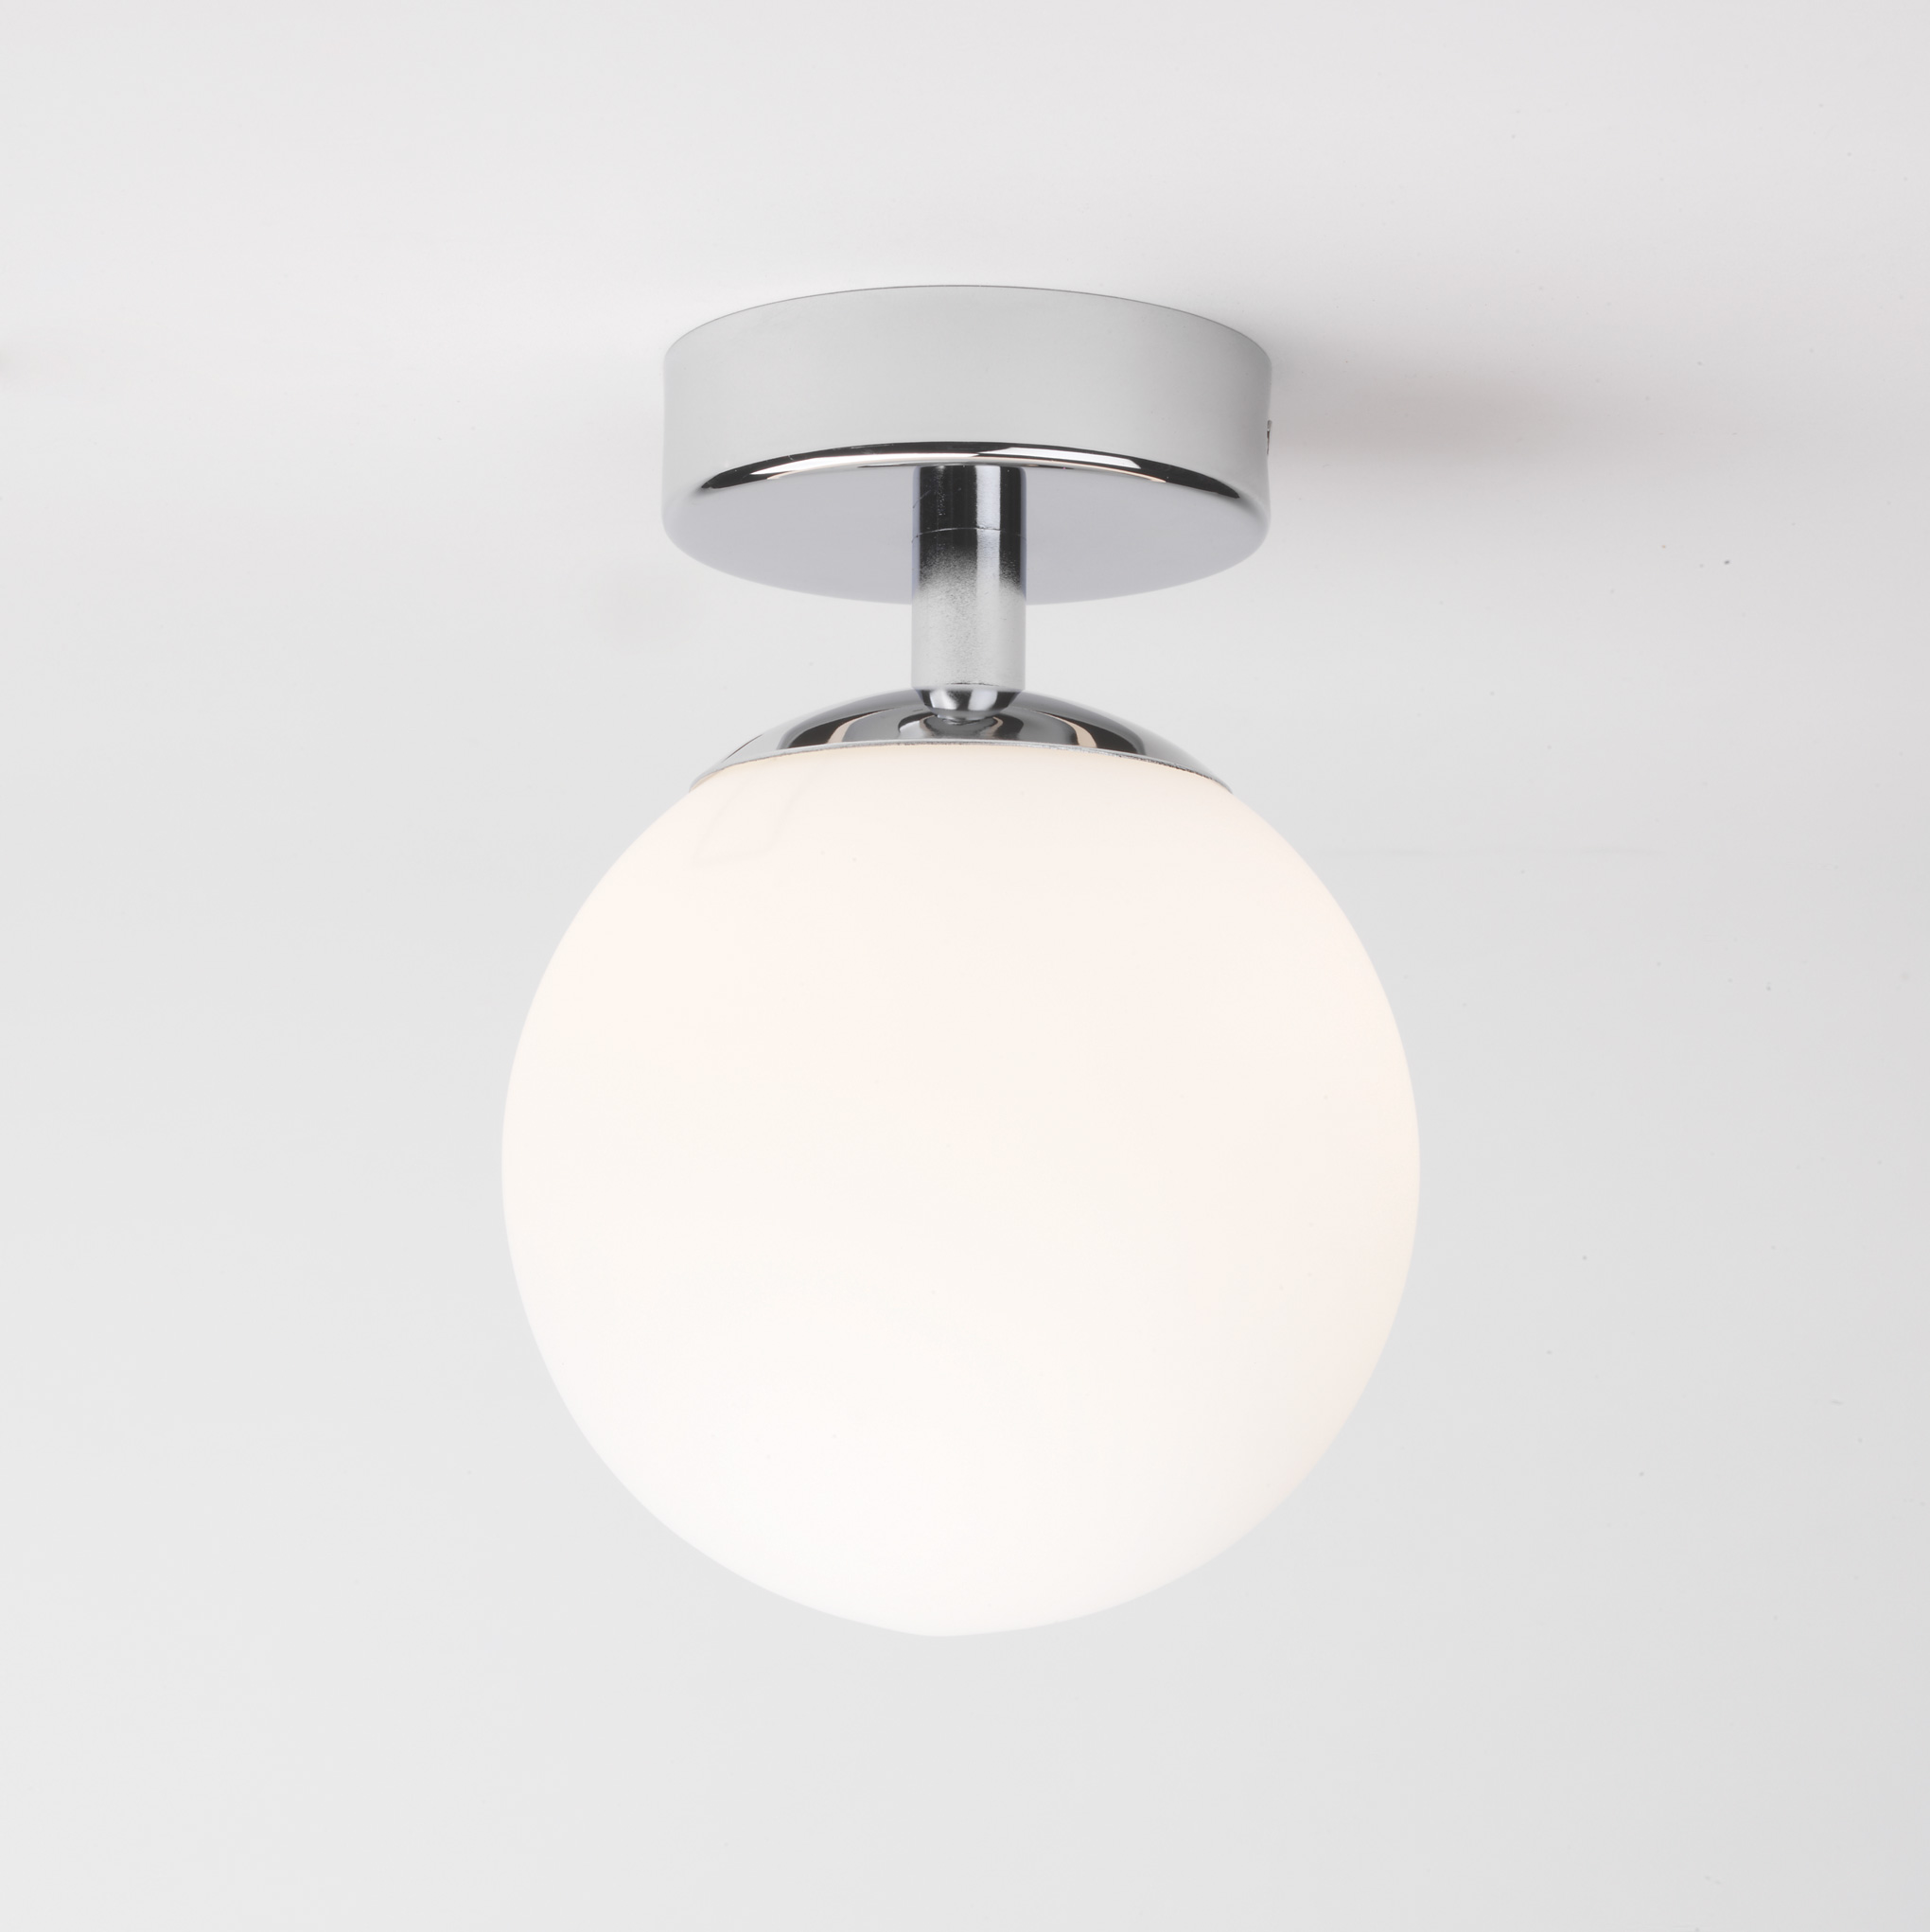 Astro Denver 0323 Bathroom glass small globe ceiling light chrome 40W G9